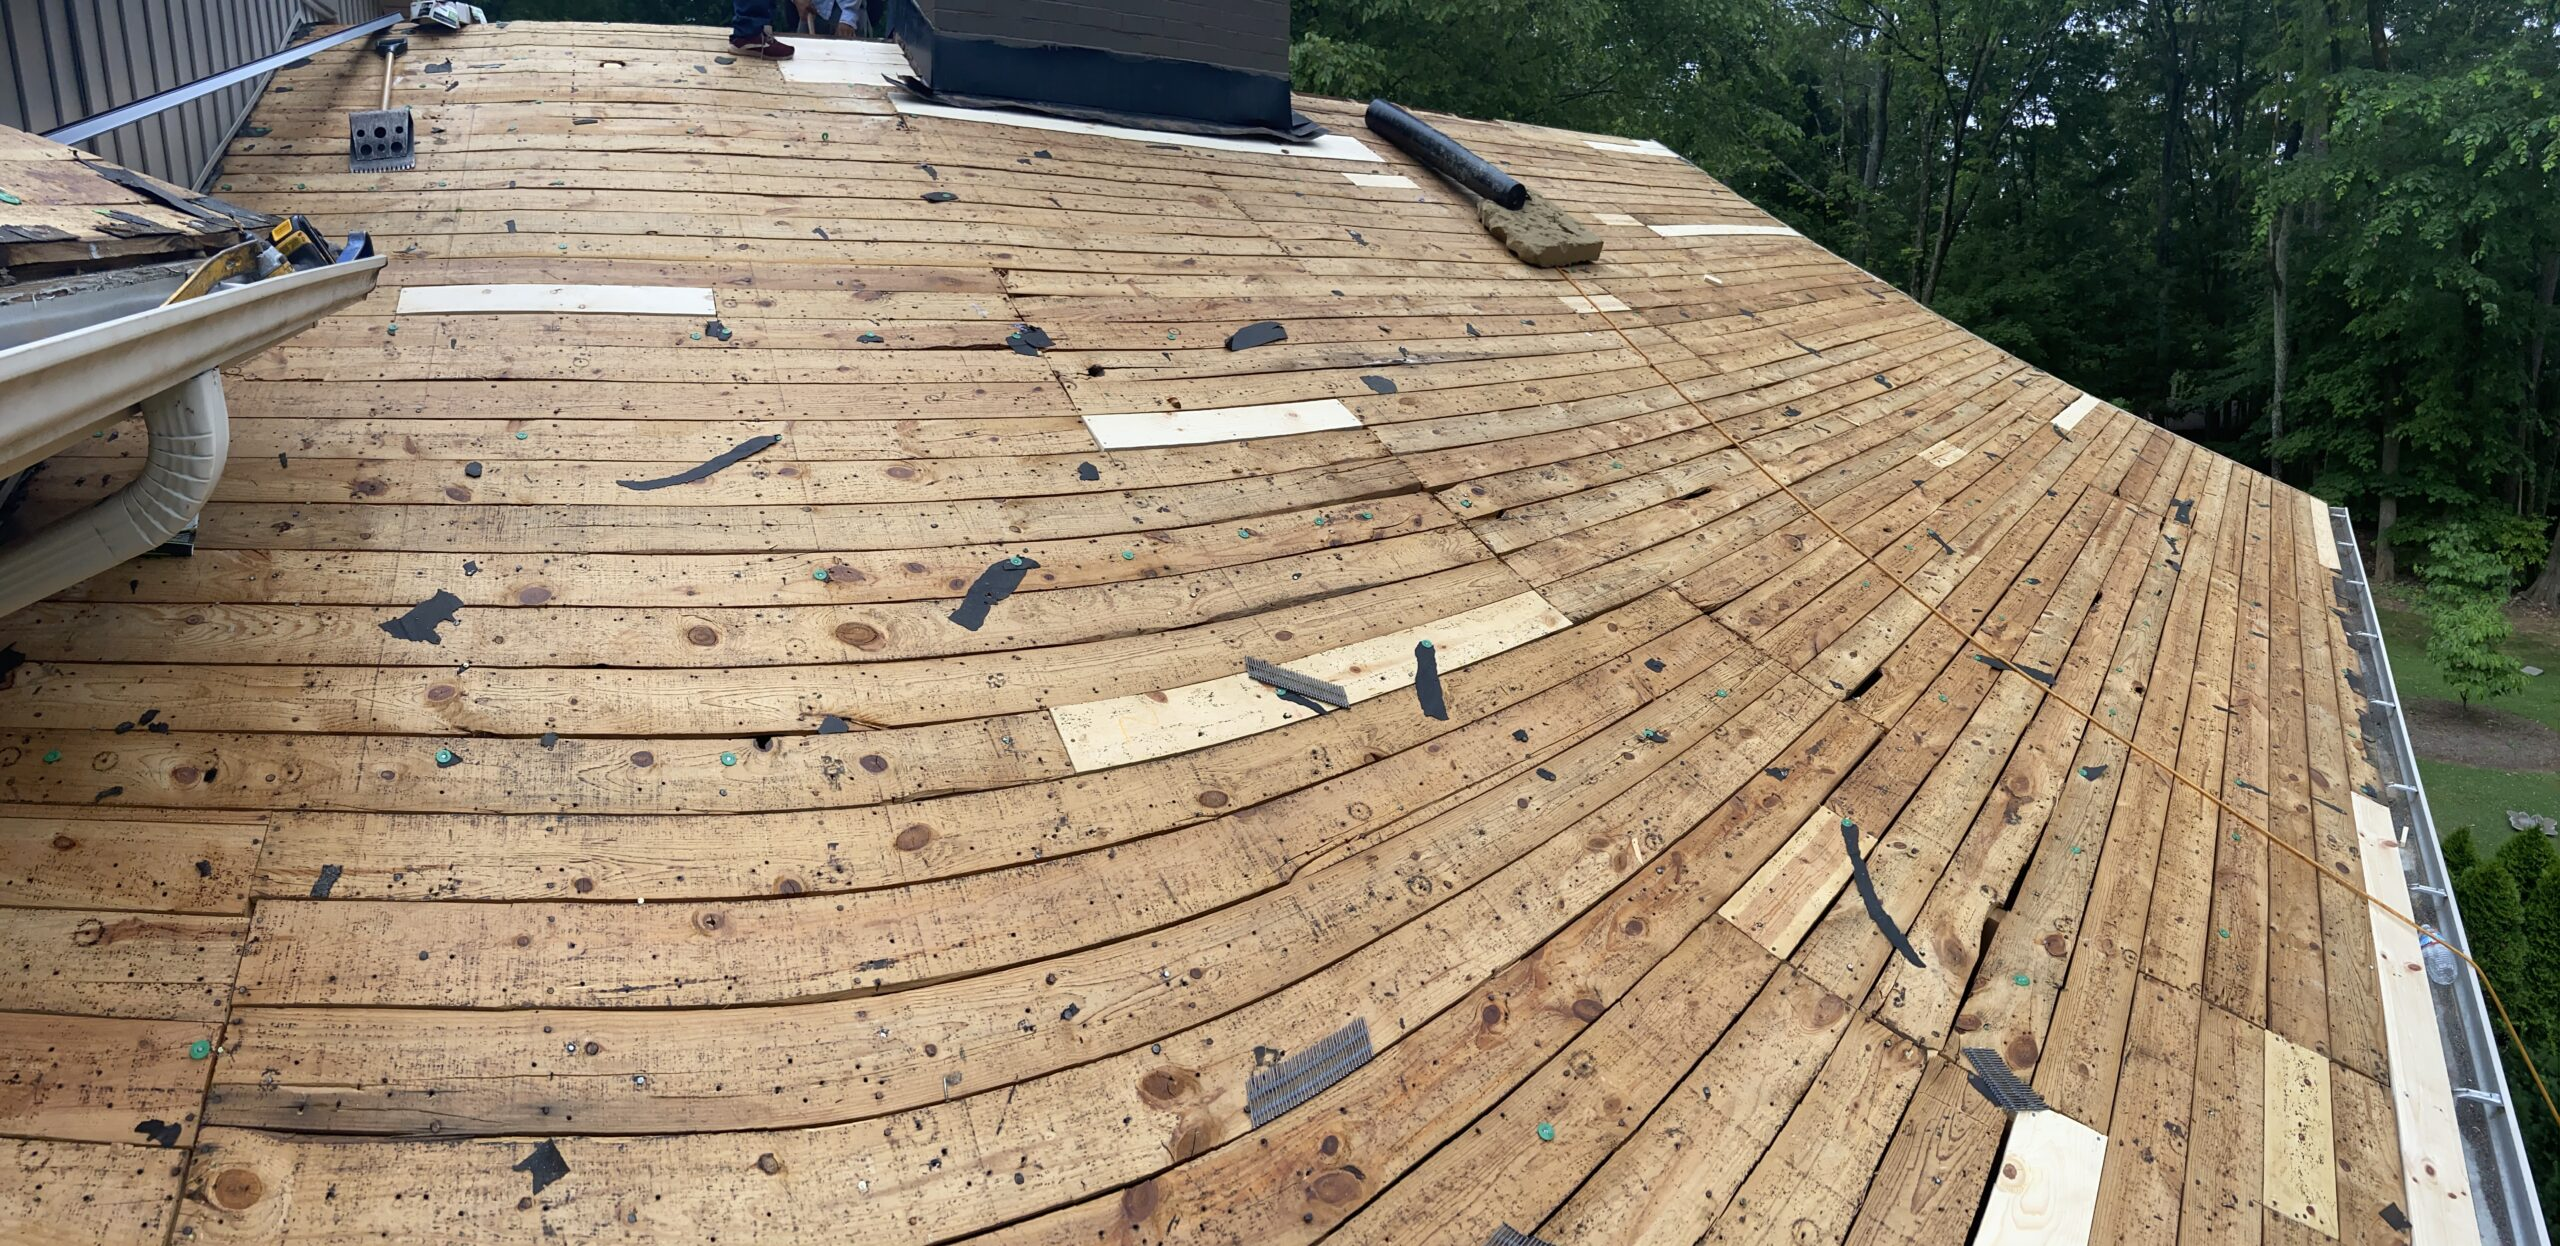 This is a picture of a lot of bad deck boards on a roof that are being replaced with new 1x6 wood